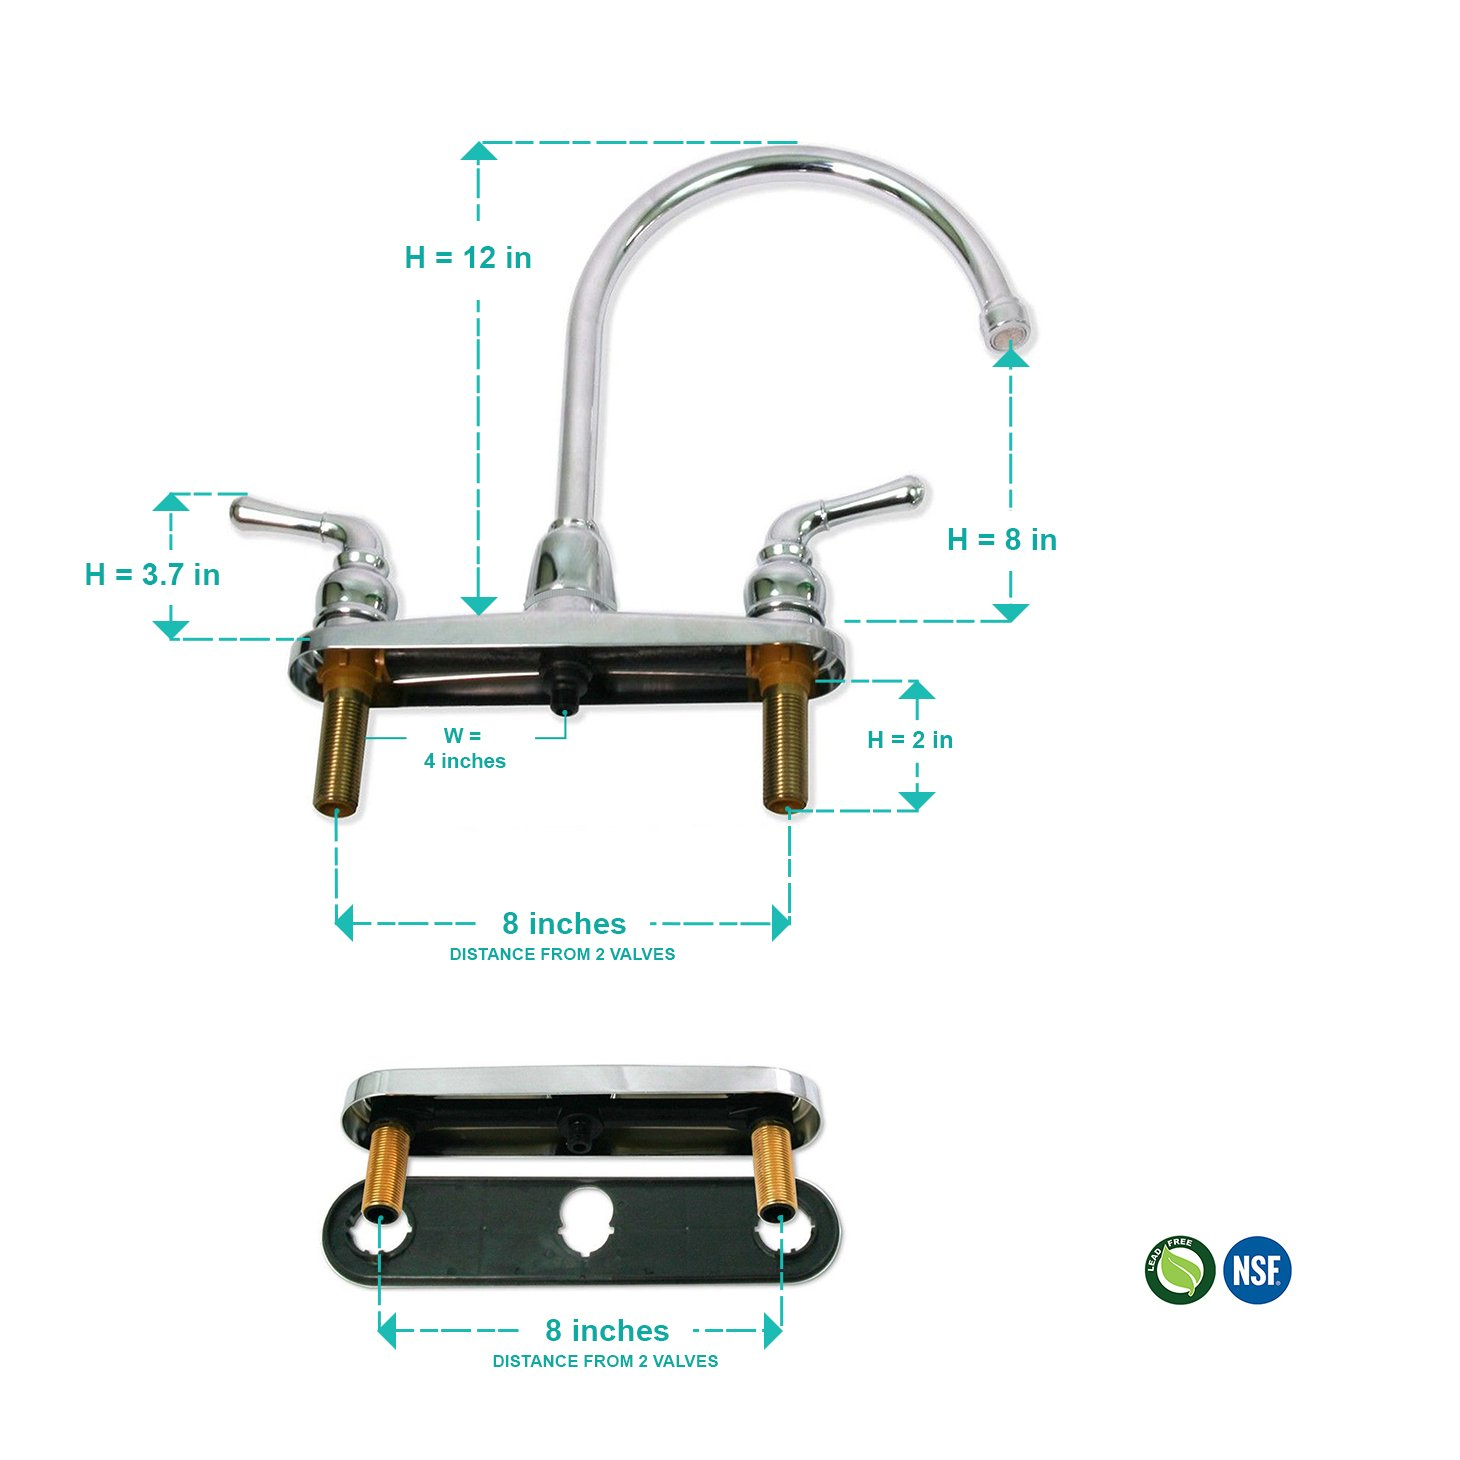 Everflow Kitchen Faucet without Spray, High Arc Swivel Spout Two Easy To Operate Metal Handles 17187, Chrome Finish Lead-Free Construction 2.2 GPM Flow Rate by Everflow Supplies (Image #4)